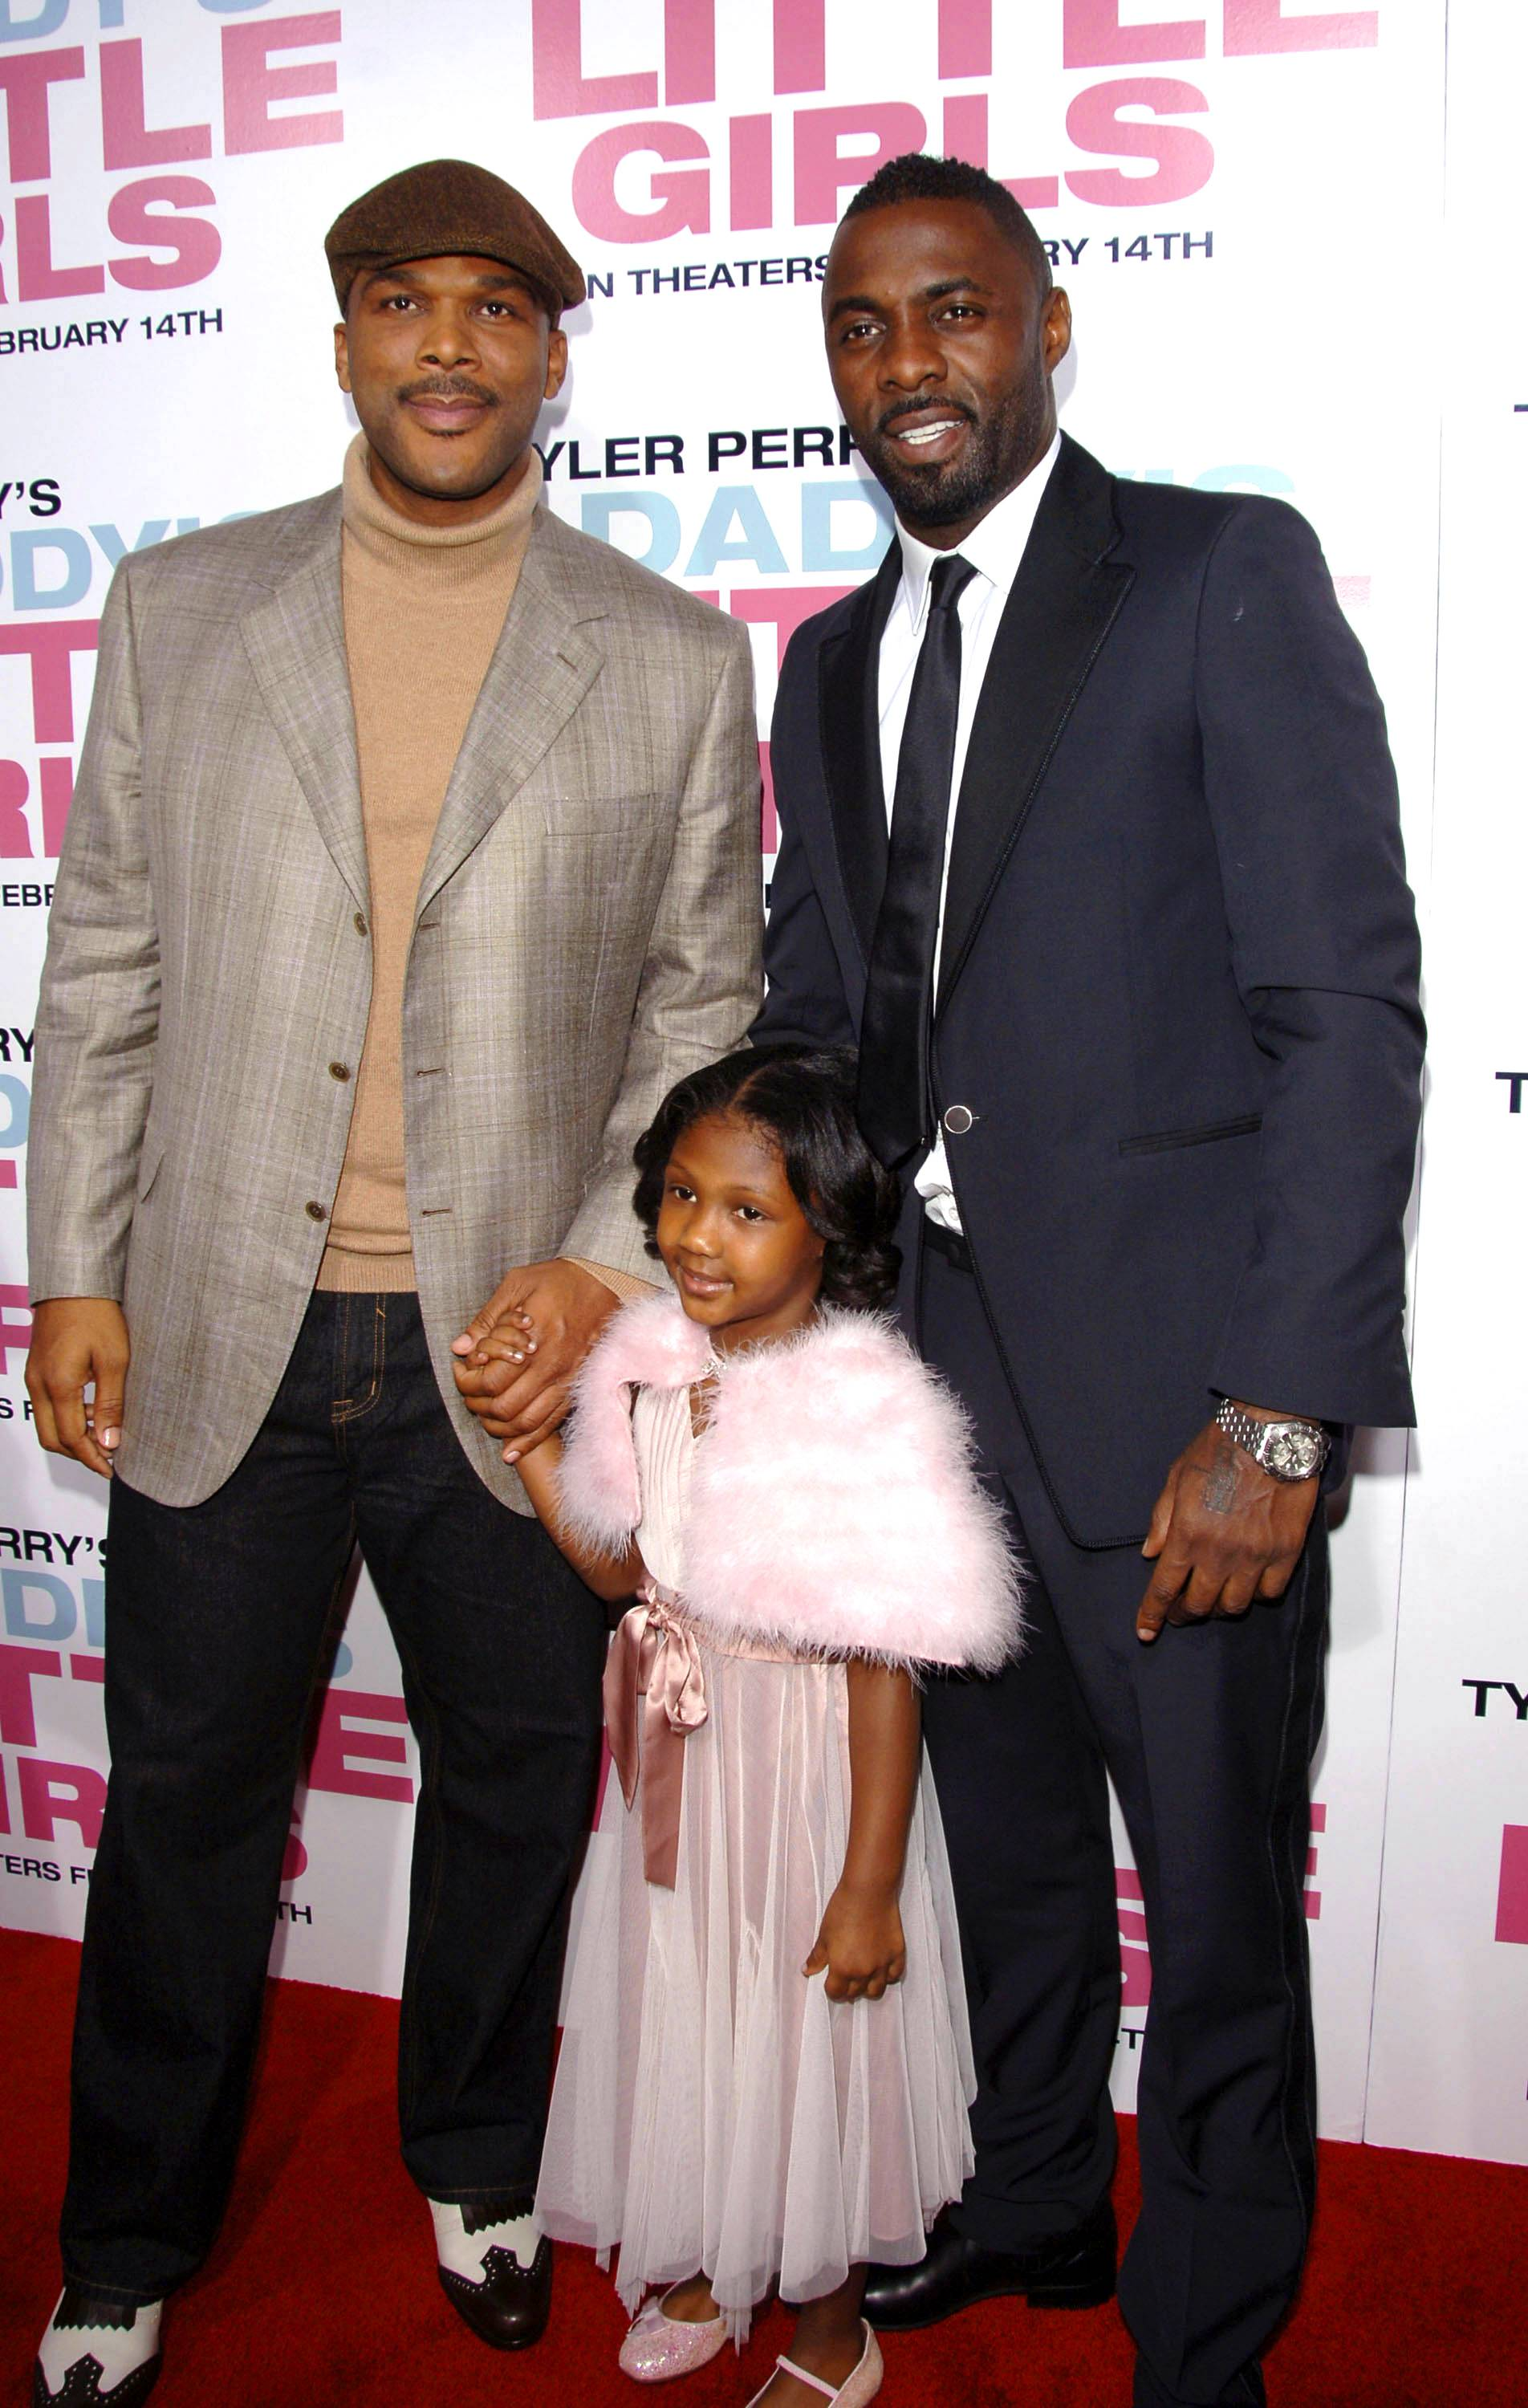 """Idris Elba - British actor Idris Elba shares an adage his mum and dad bestowed on him that he's now passed on to his little girl: """"Whatever it is you want to do?I don't care if it's whether you want to sweep the streets or touch the clouds?go for it! Go for it like it's no tomorrow.""""(Photo: Stephen Shugerman/Getty Images)"""